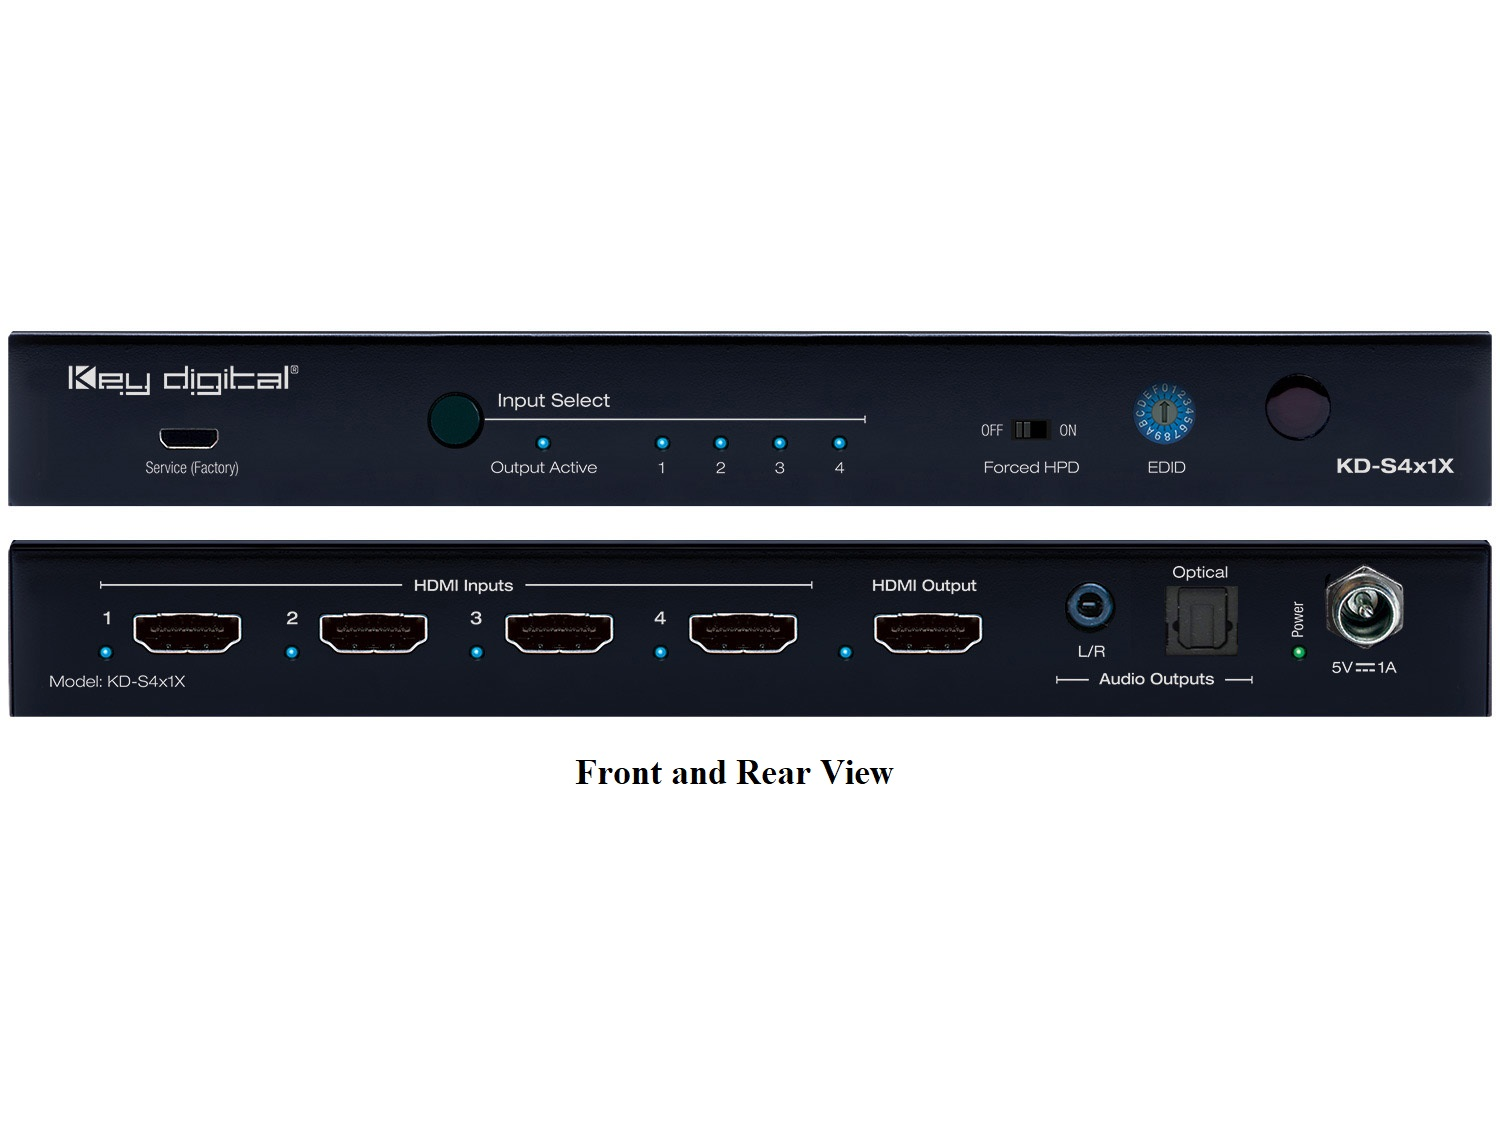 KD-S4x1X 4x1 (4K/60Hz/18G/444) HDMI Switcher with L/R Optical Audio and De-Embedded Audio Output by Key Digital